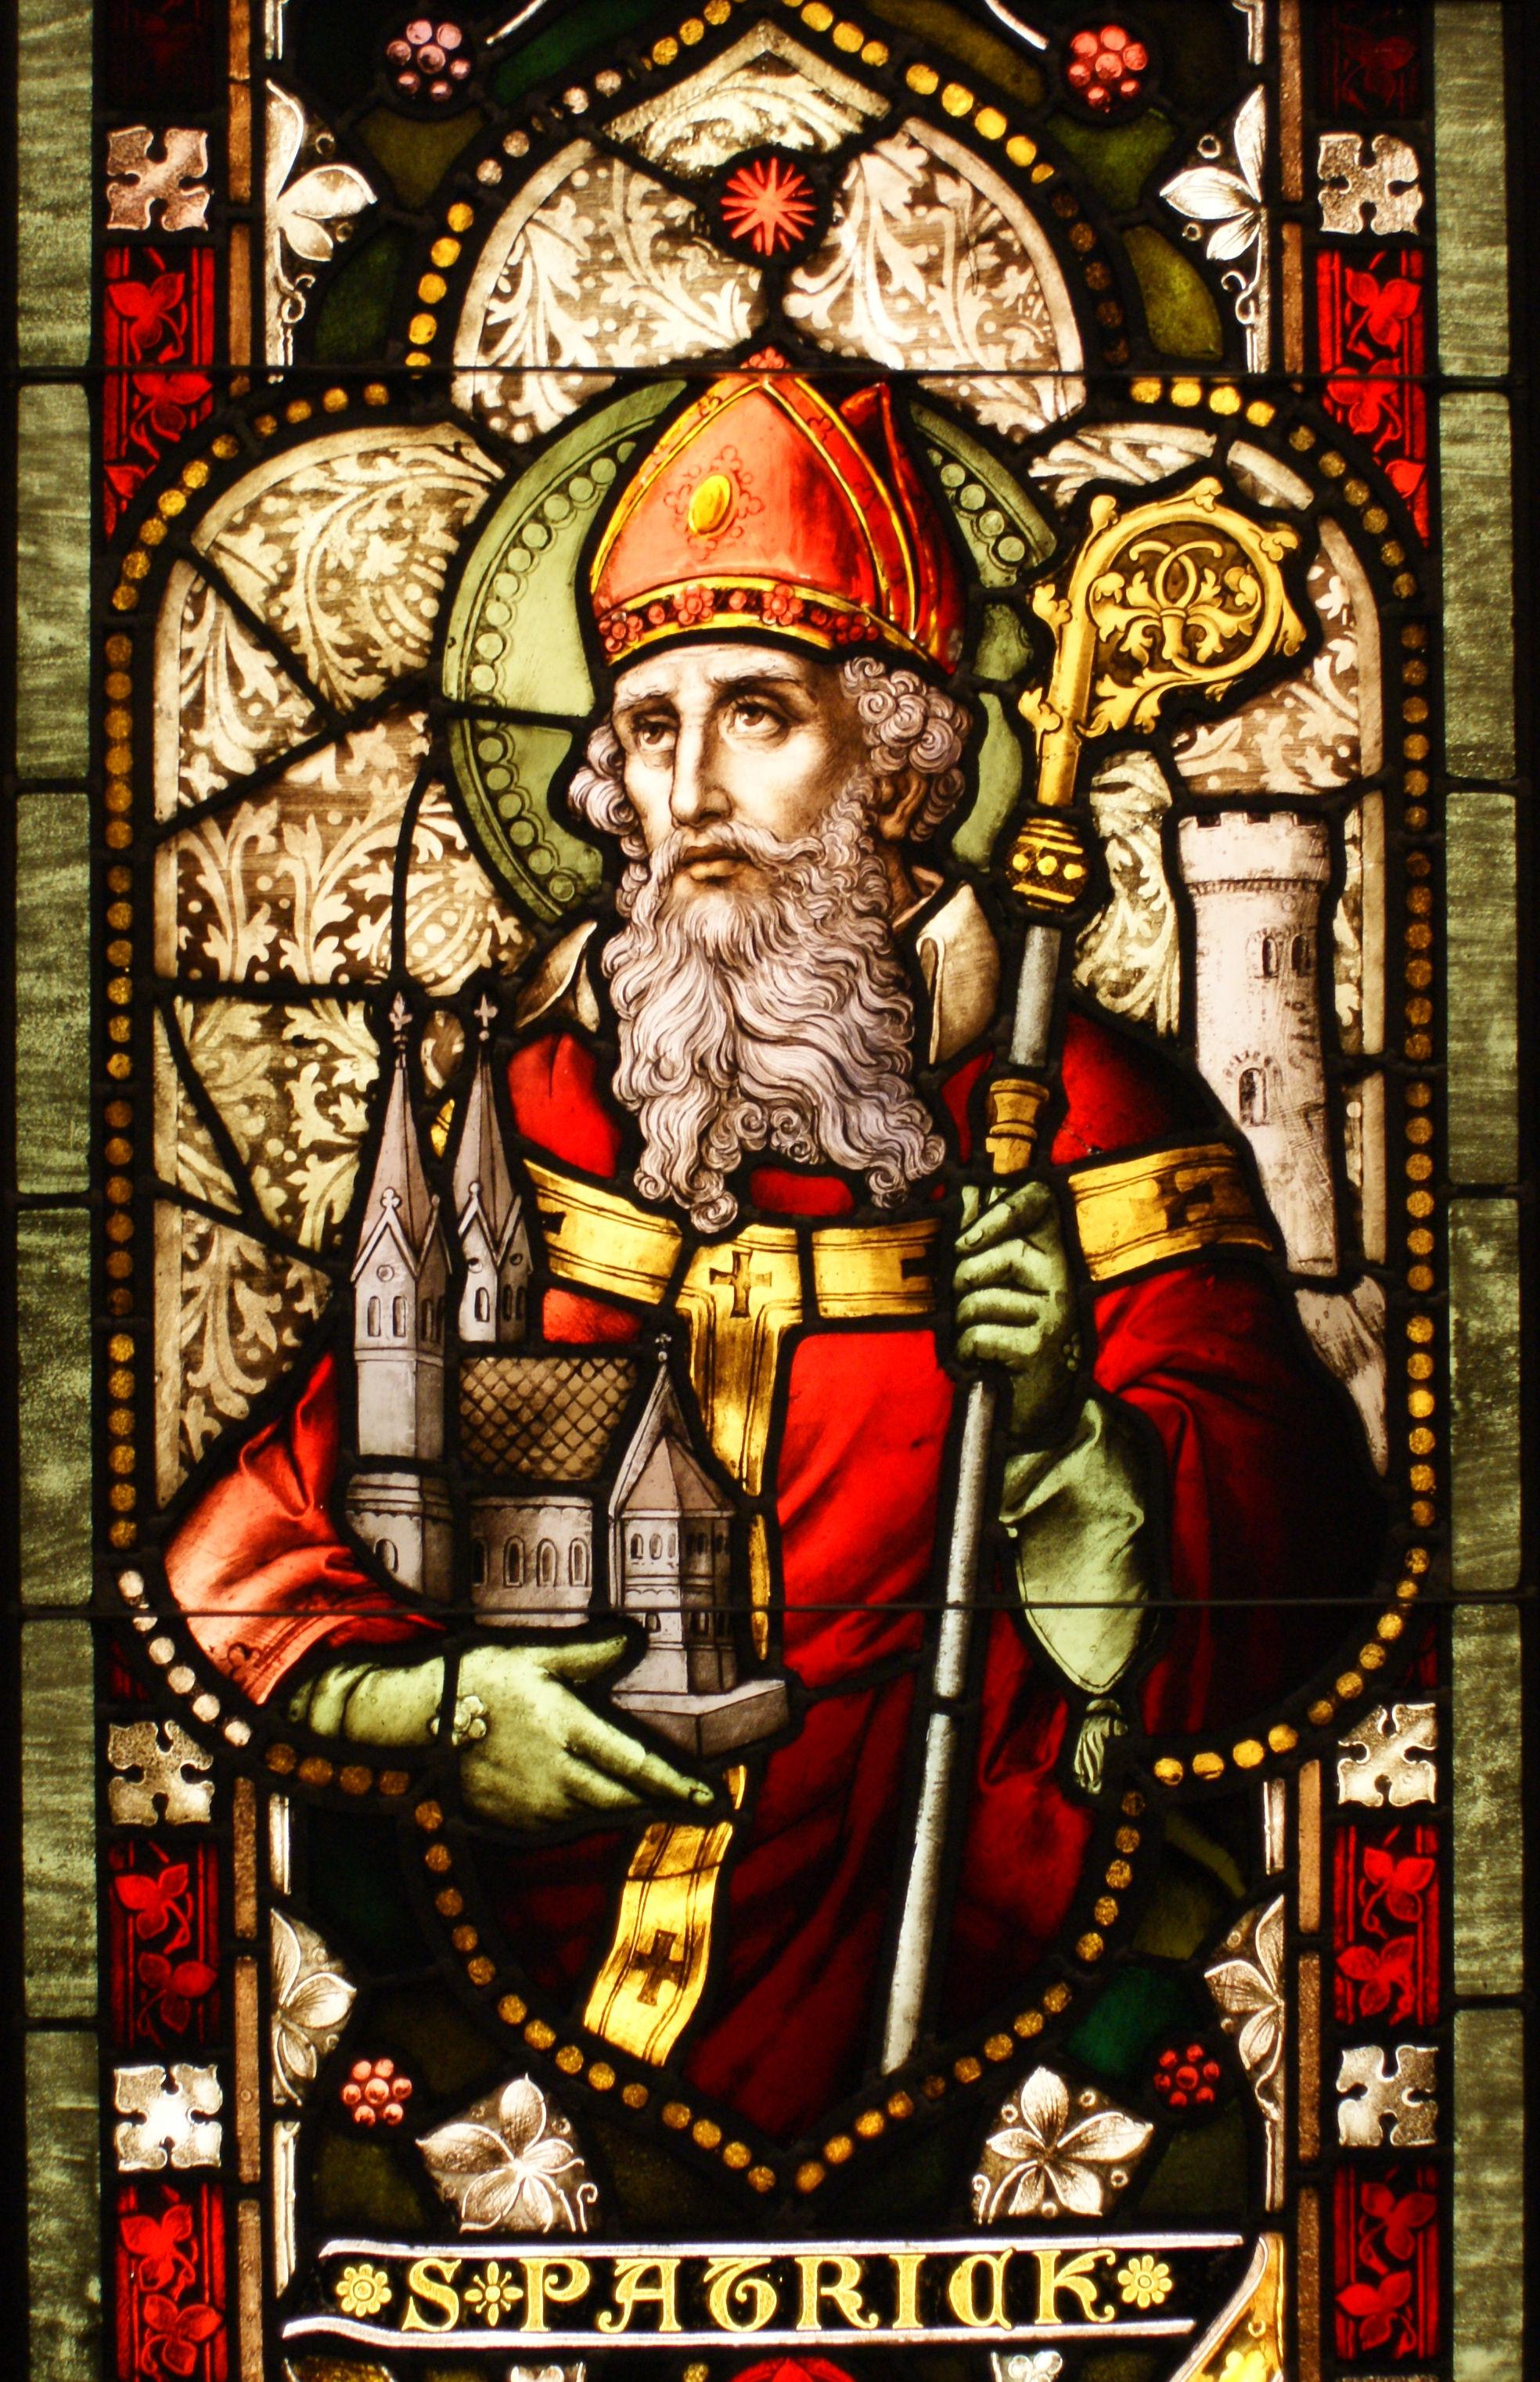 Saint Patrick stained glass.